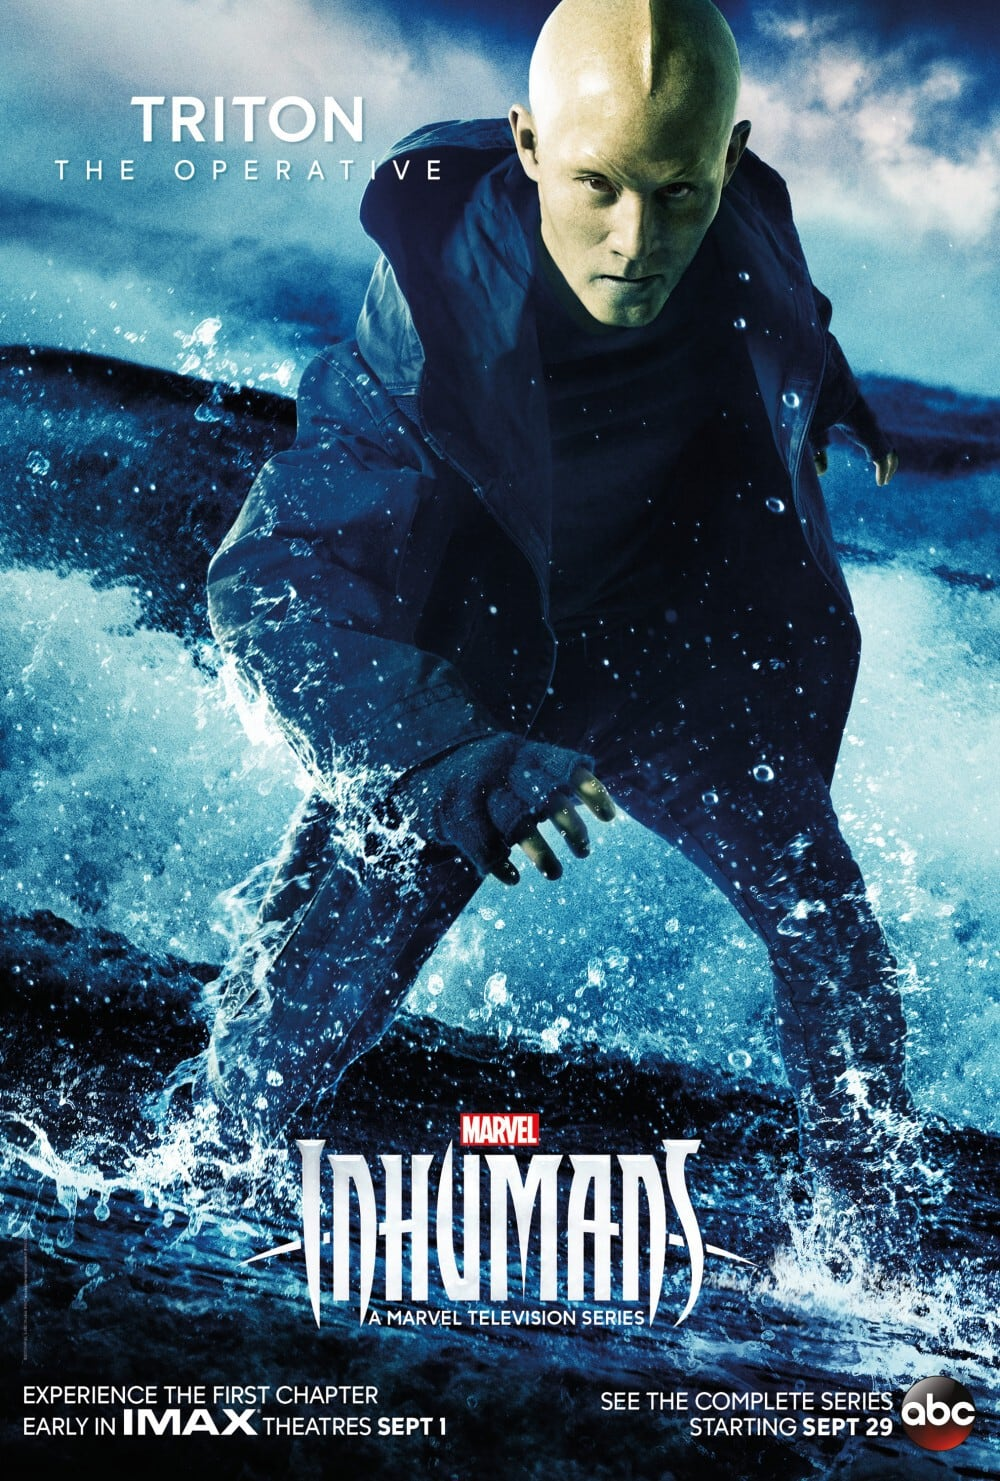 Marvel's Inhumans - New Character Poster Triton